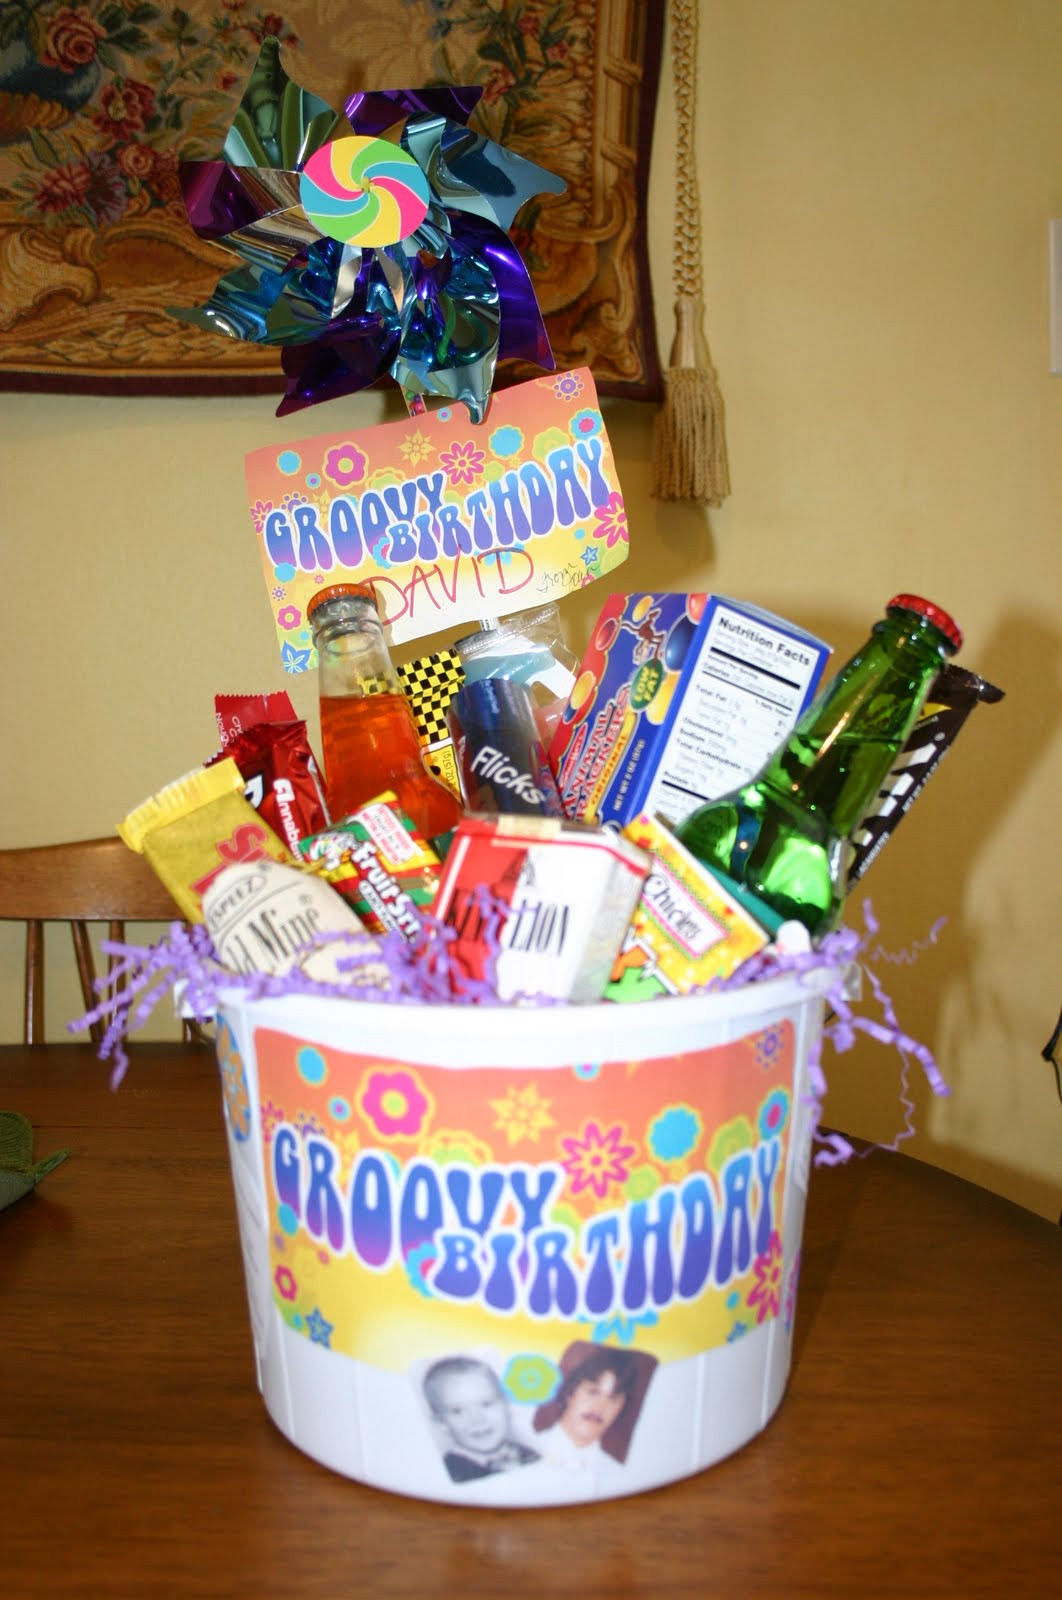 Best ideas about Gift Ideas For 50th Birthday . Save or Pin Express Your Creativity Cambria Pines & 50th Birthday Now.